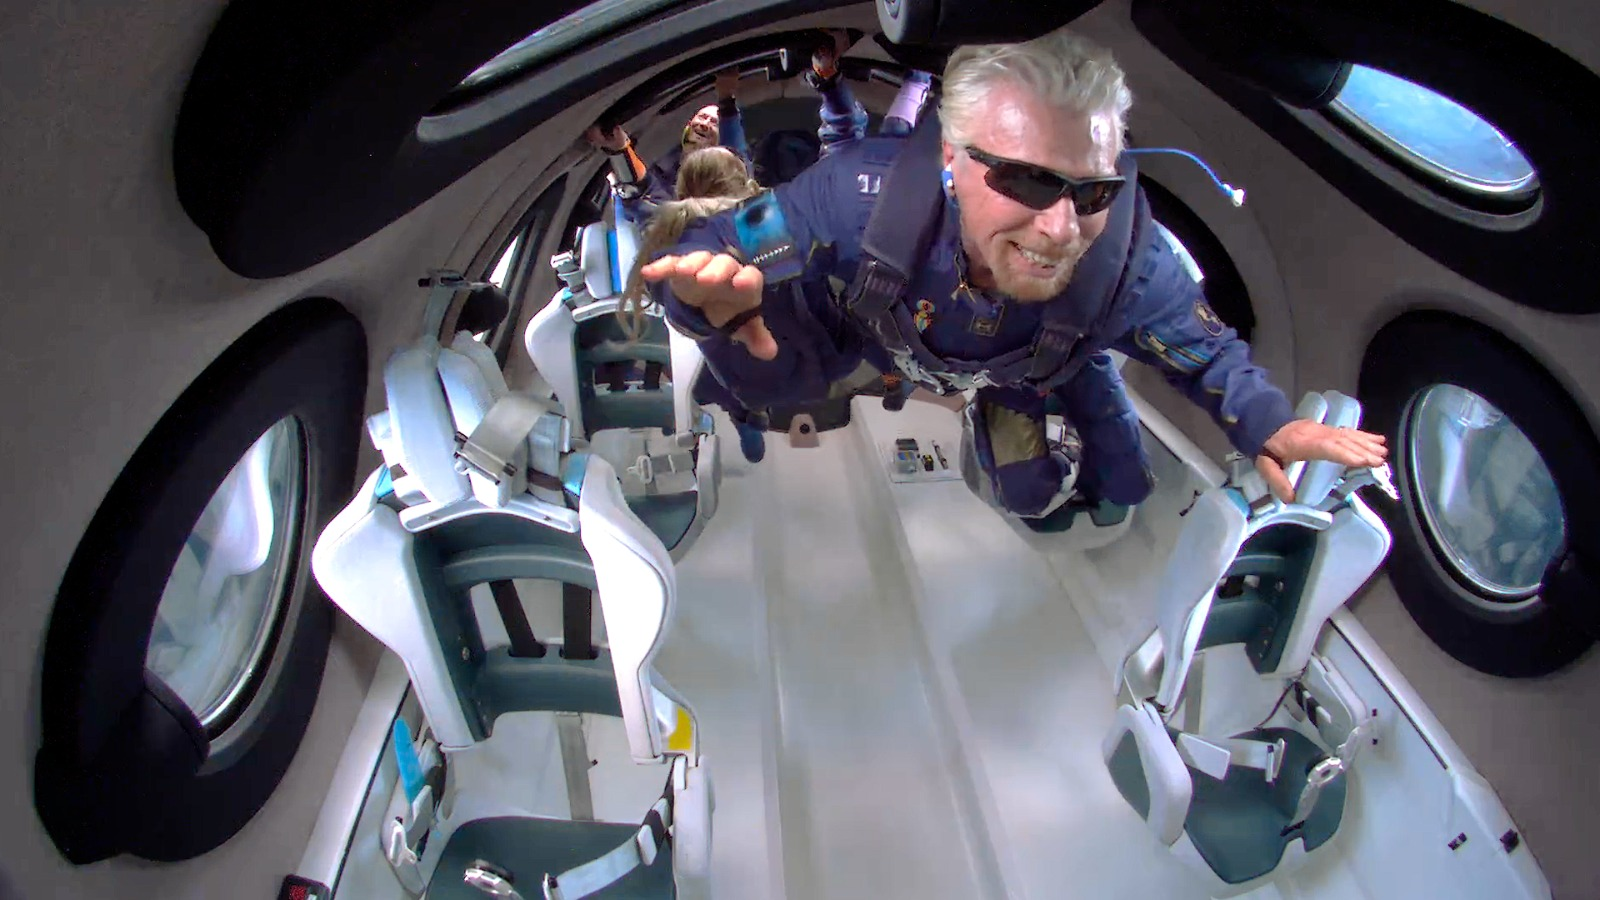 Pilots saw 'red light' warning during Virgin Galactic's historic spaceflight with Richard Branson: report